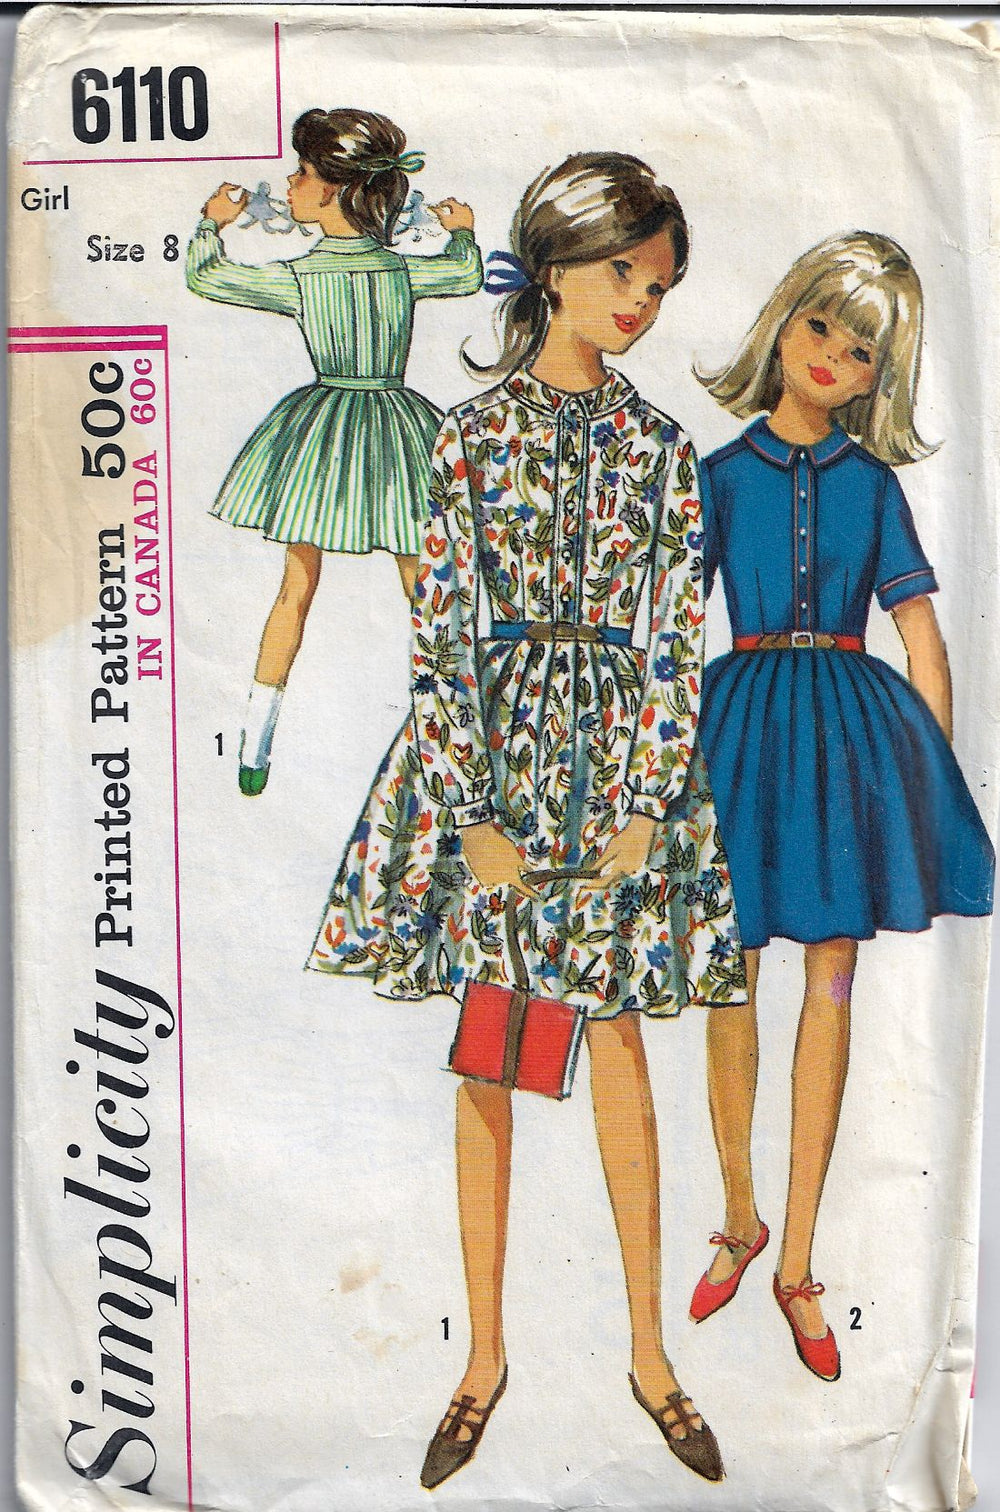 Simplicity 6110 Girls One Piece Dress Vintage 1960's Sewing Pattern - VintageStitching - Vintage Sewing Patterns